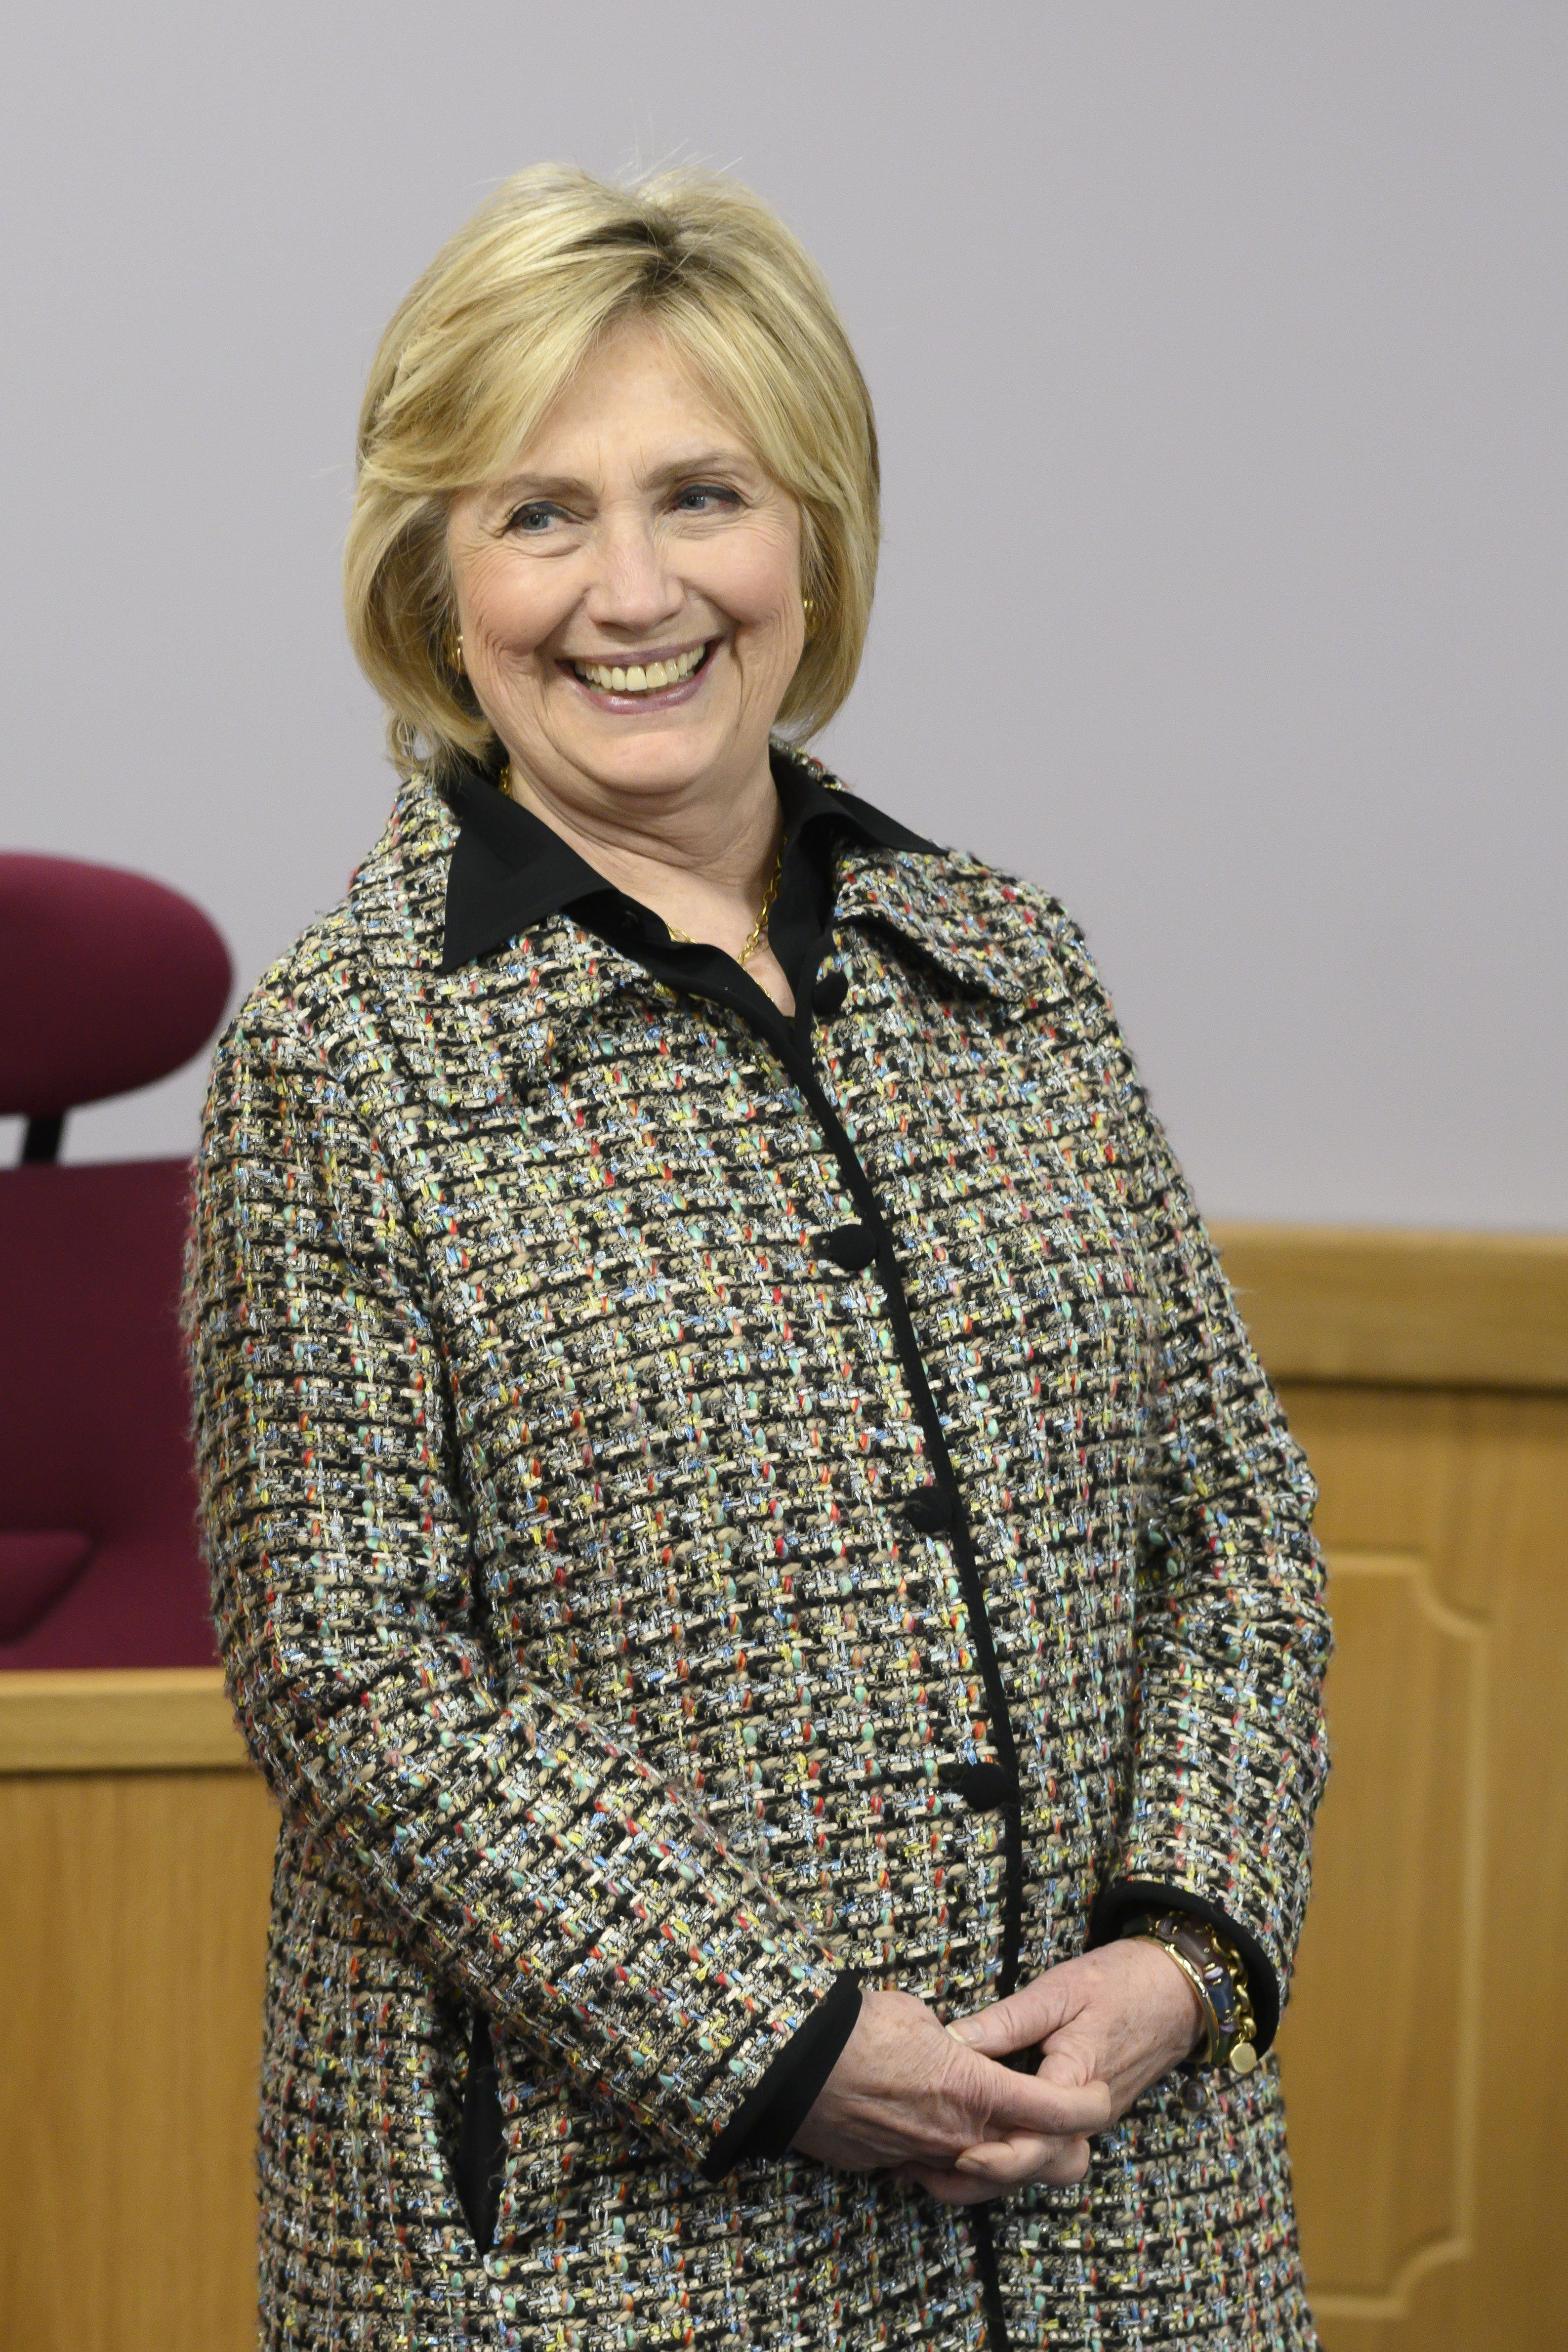 Hillary Clinton visits Swansea University in Swansea, Wales on November 14, 2019 | Photo: Getty Images